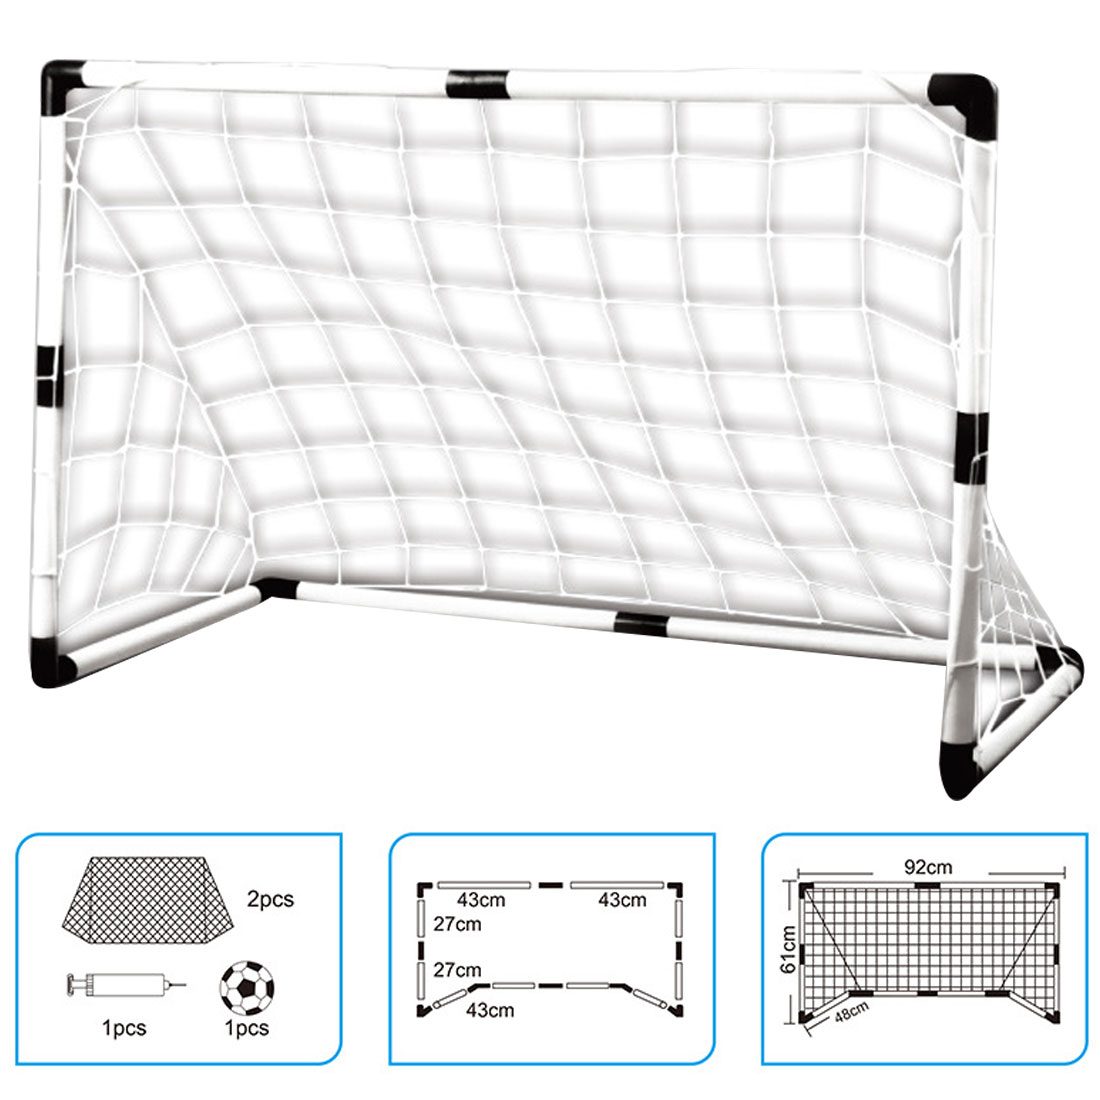 2 Sets Detachable DIY Children Sports Soccer Goals Practice Scrimmage Game Football Gate DIY White With Soccer Ball and Pump